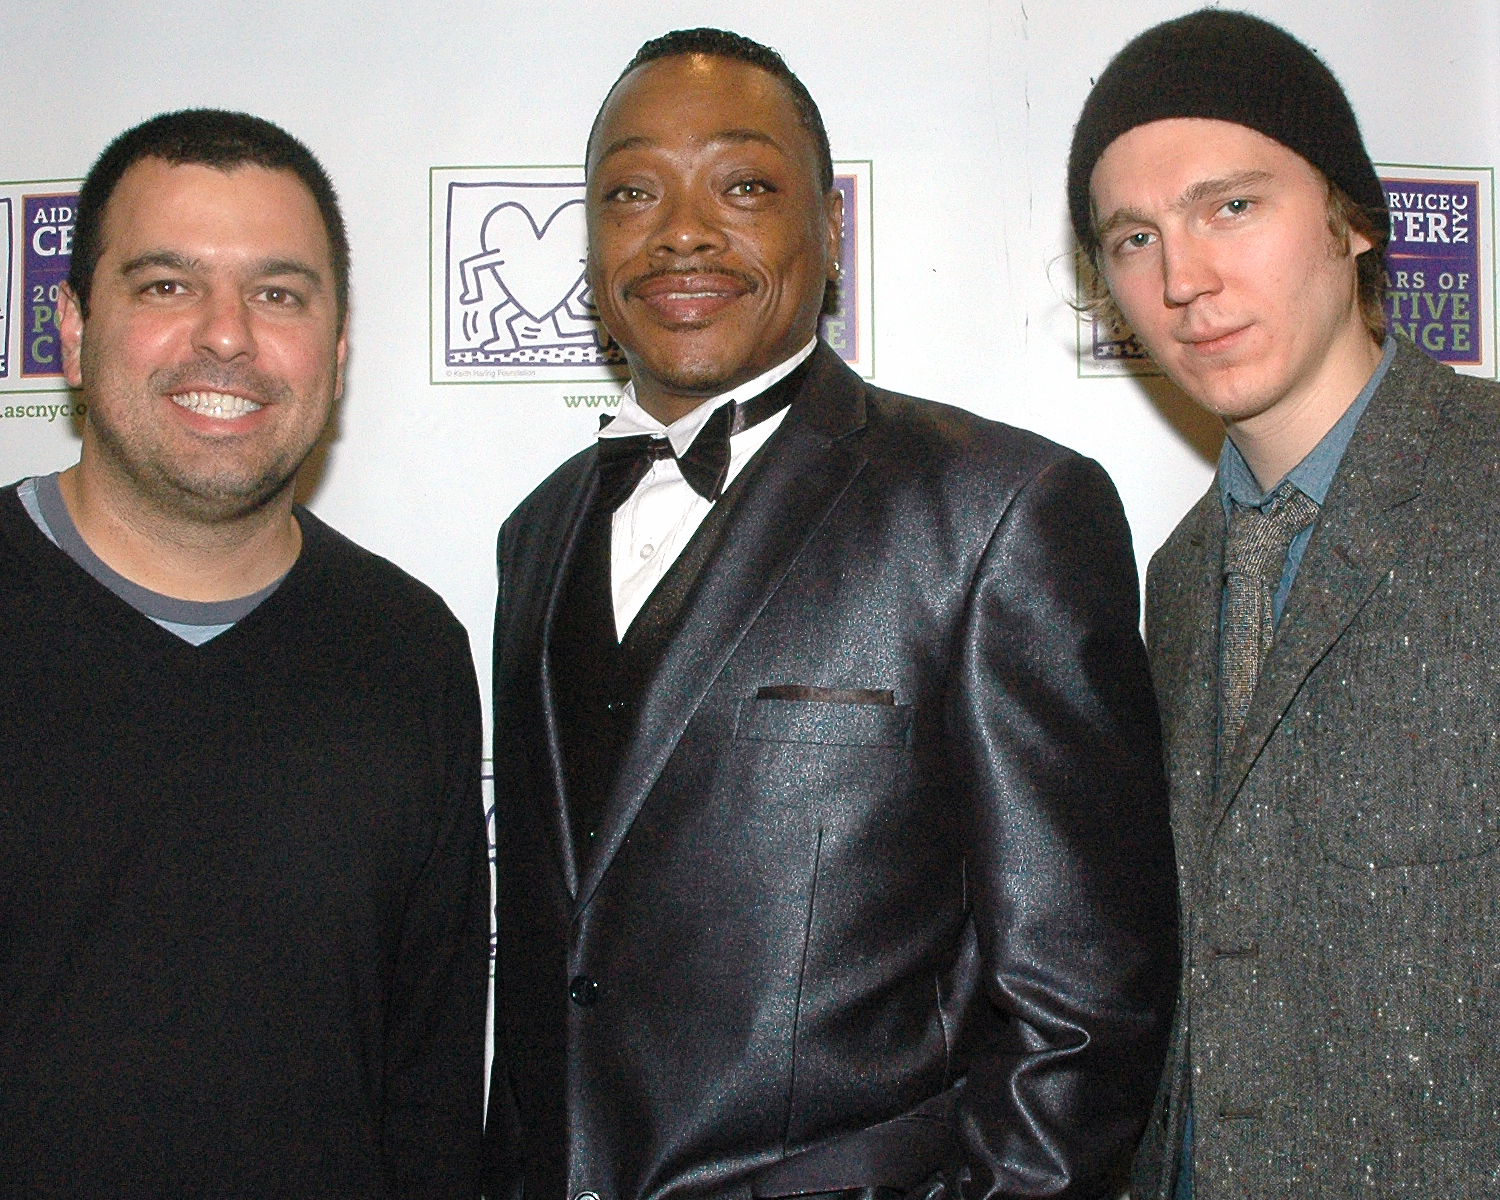 Paul Dano, Producer Andrew Miano and ASCNYC Star Stephen W.